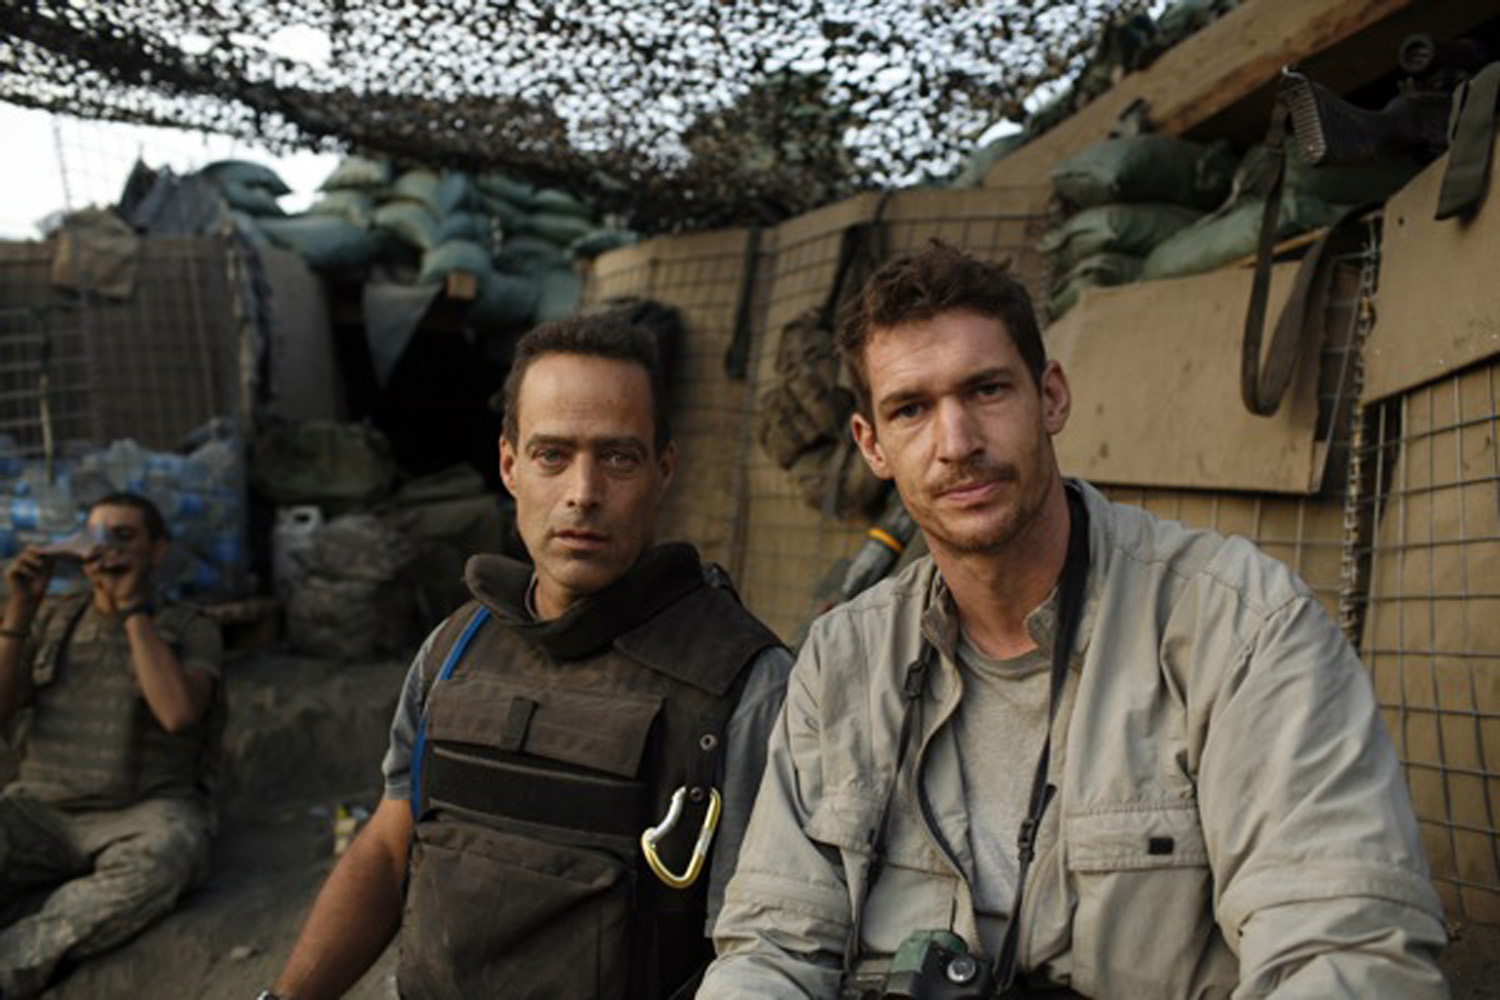 Tim Hetherington (right) and Sebastian Junger (left) at the Restrepo outpost in the Korengal Valley, Afghanistan. Junger and Hetherington jointly directed, filmed and produced the movie 'Restrepo' from June 2007 to January 2010.